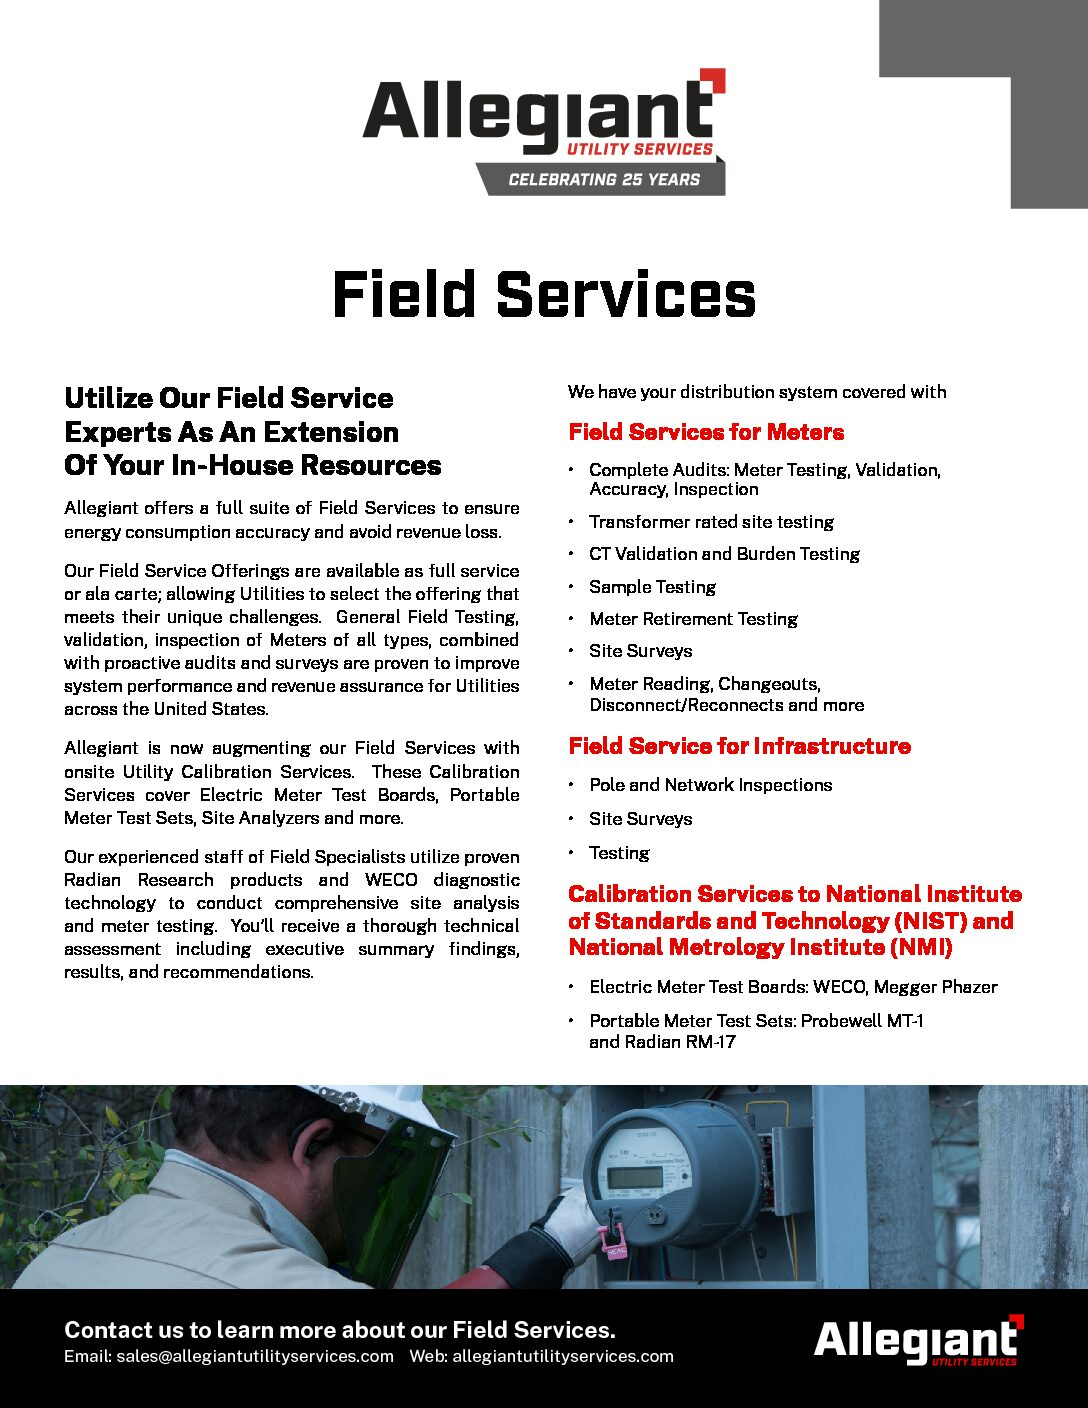 Field Services Information